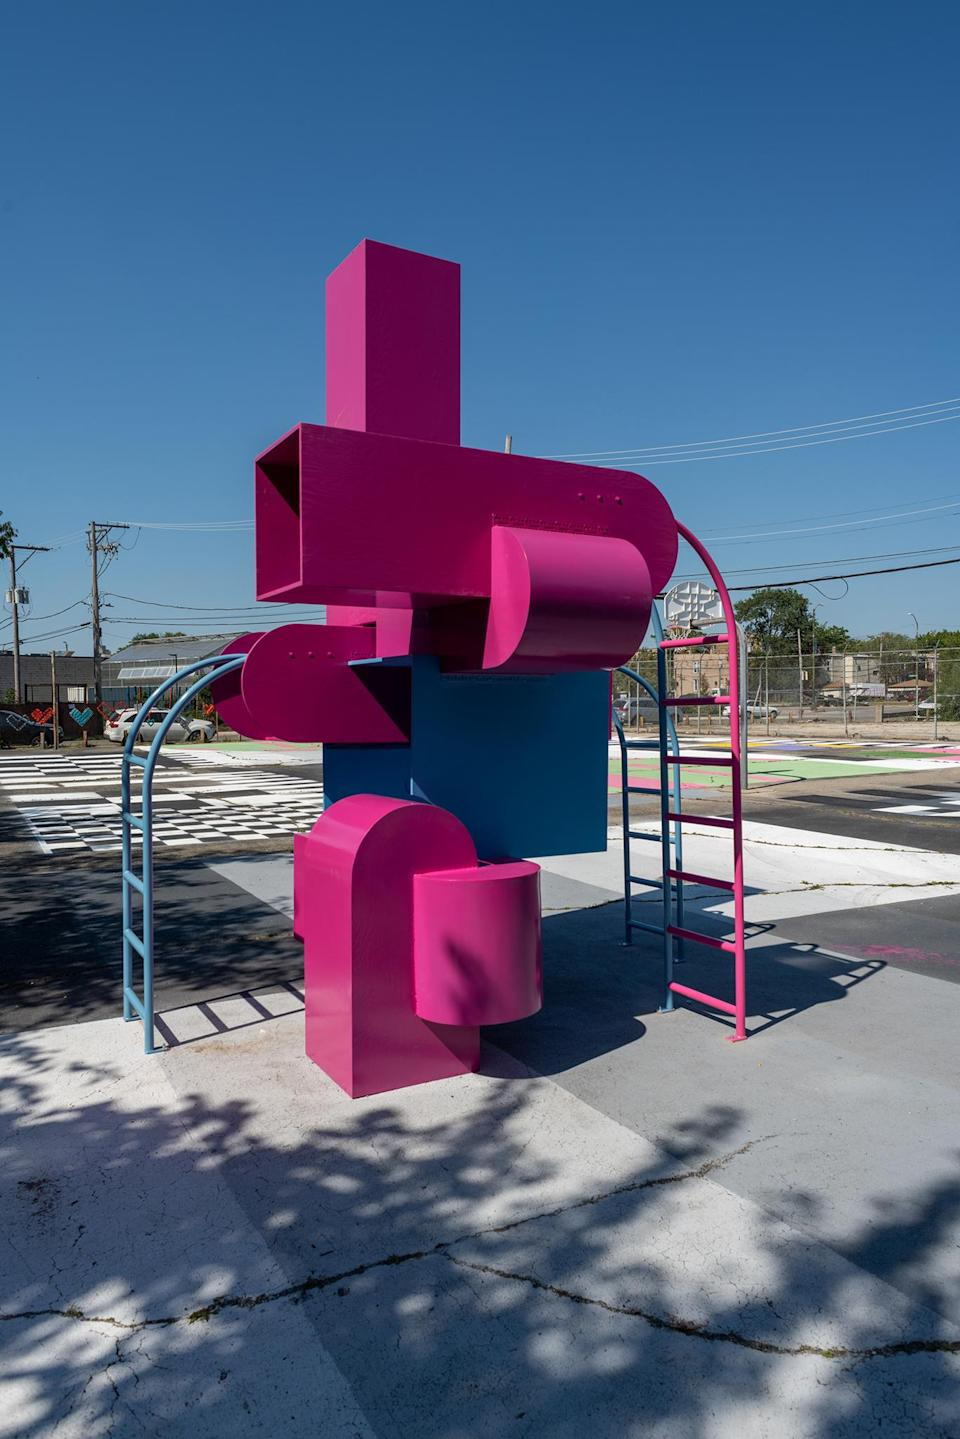 """Studio Barnes' """"Block Party"""" in Chicago. - Credit: Nathan Keay/Courtesy Chicago Architect Biennial"""